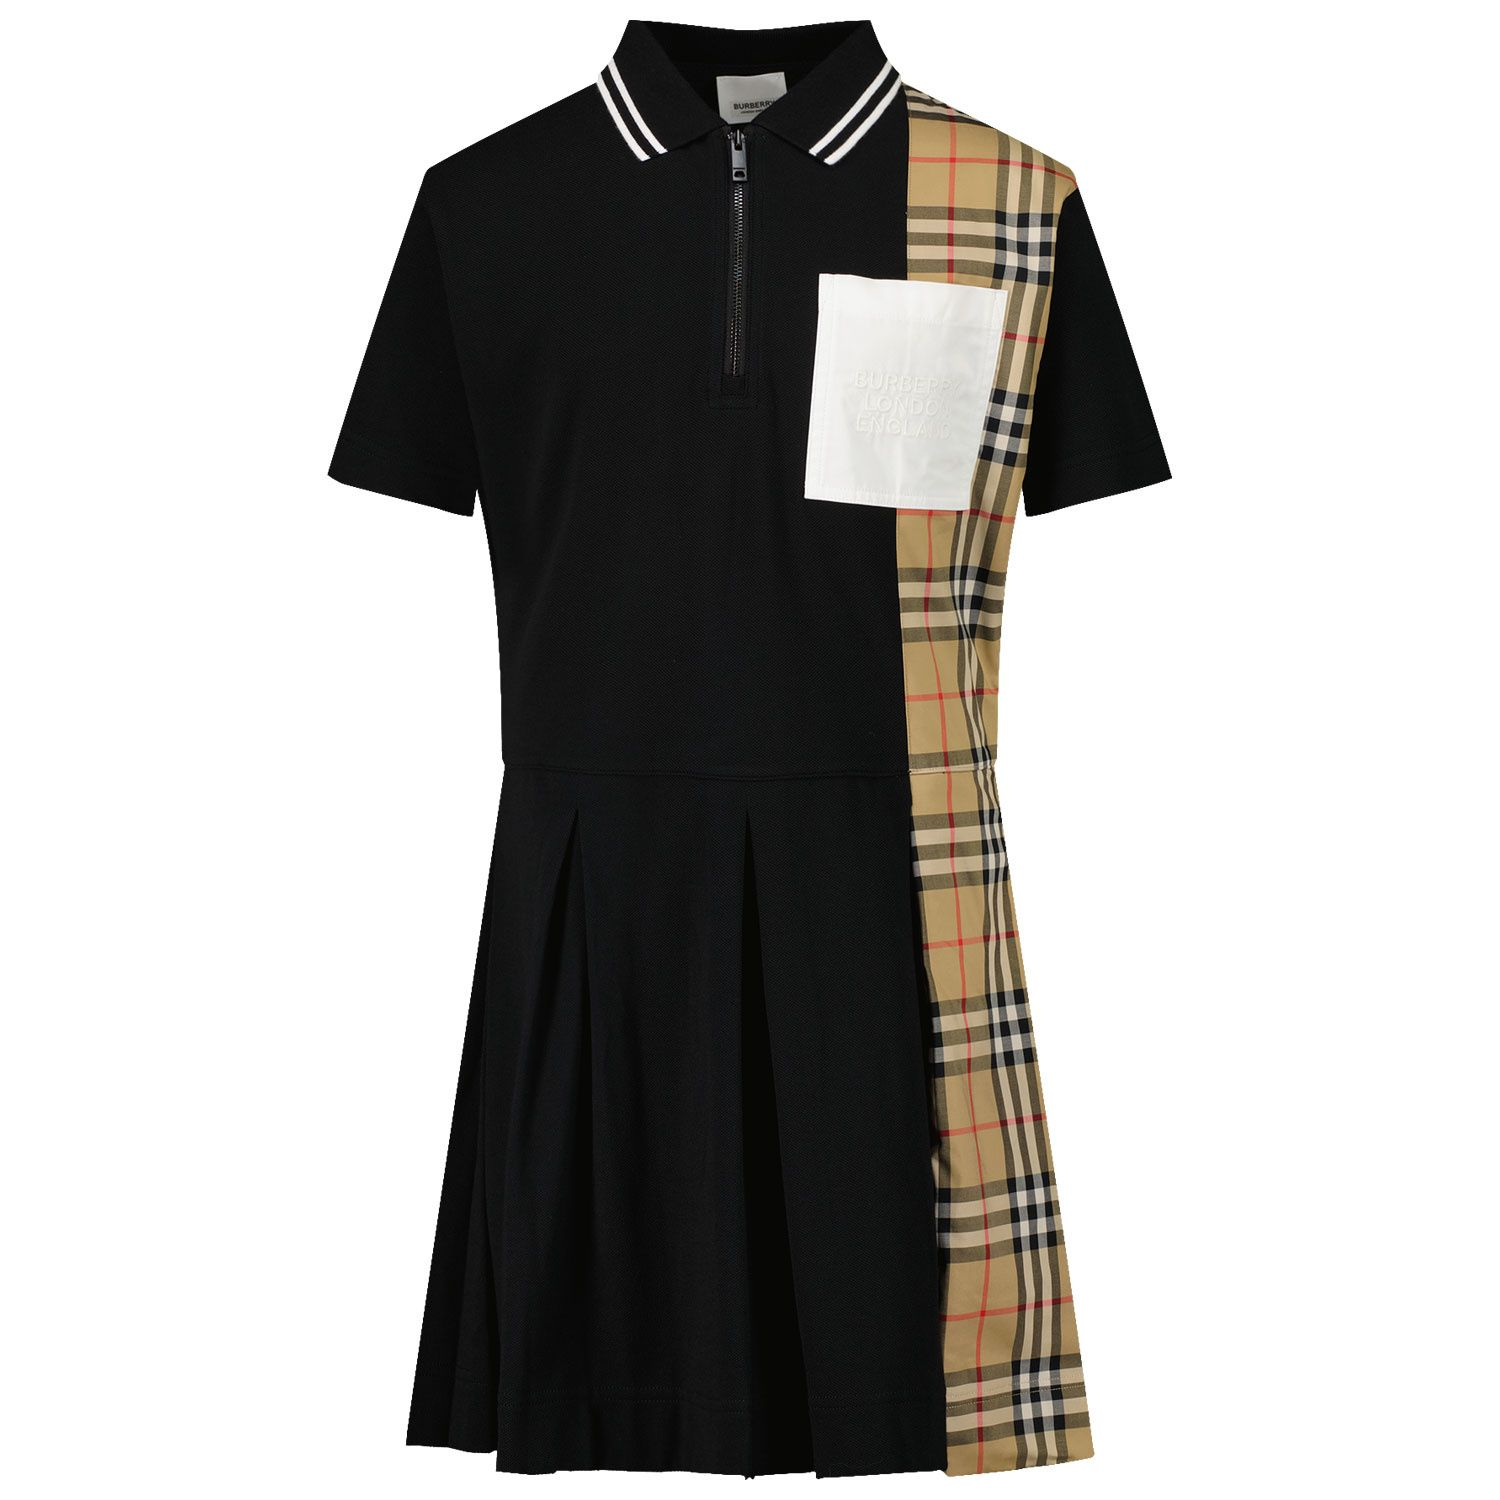 Picture of Burberry 8042354 kids dress black